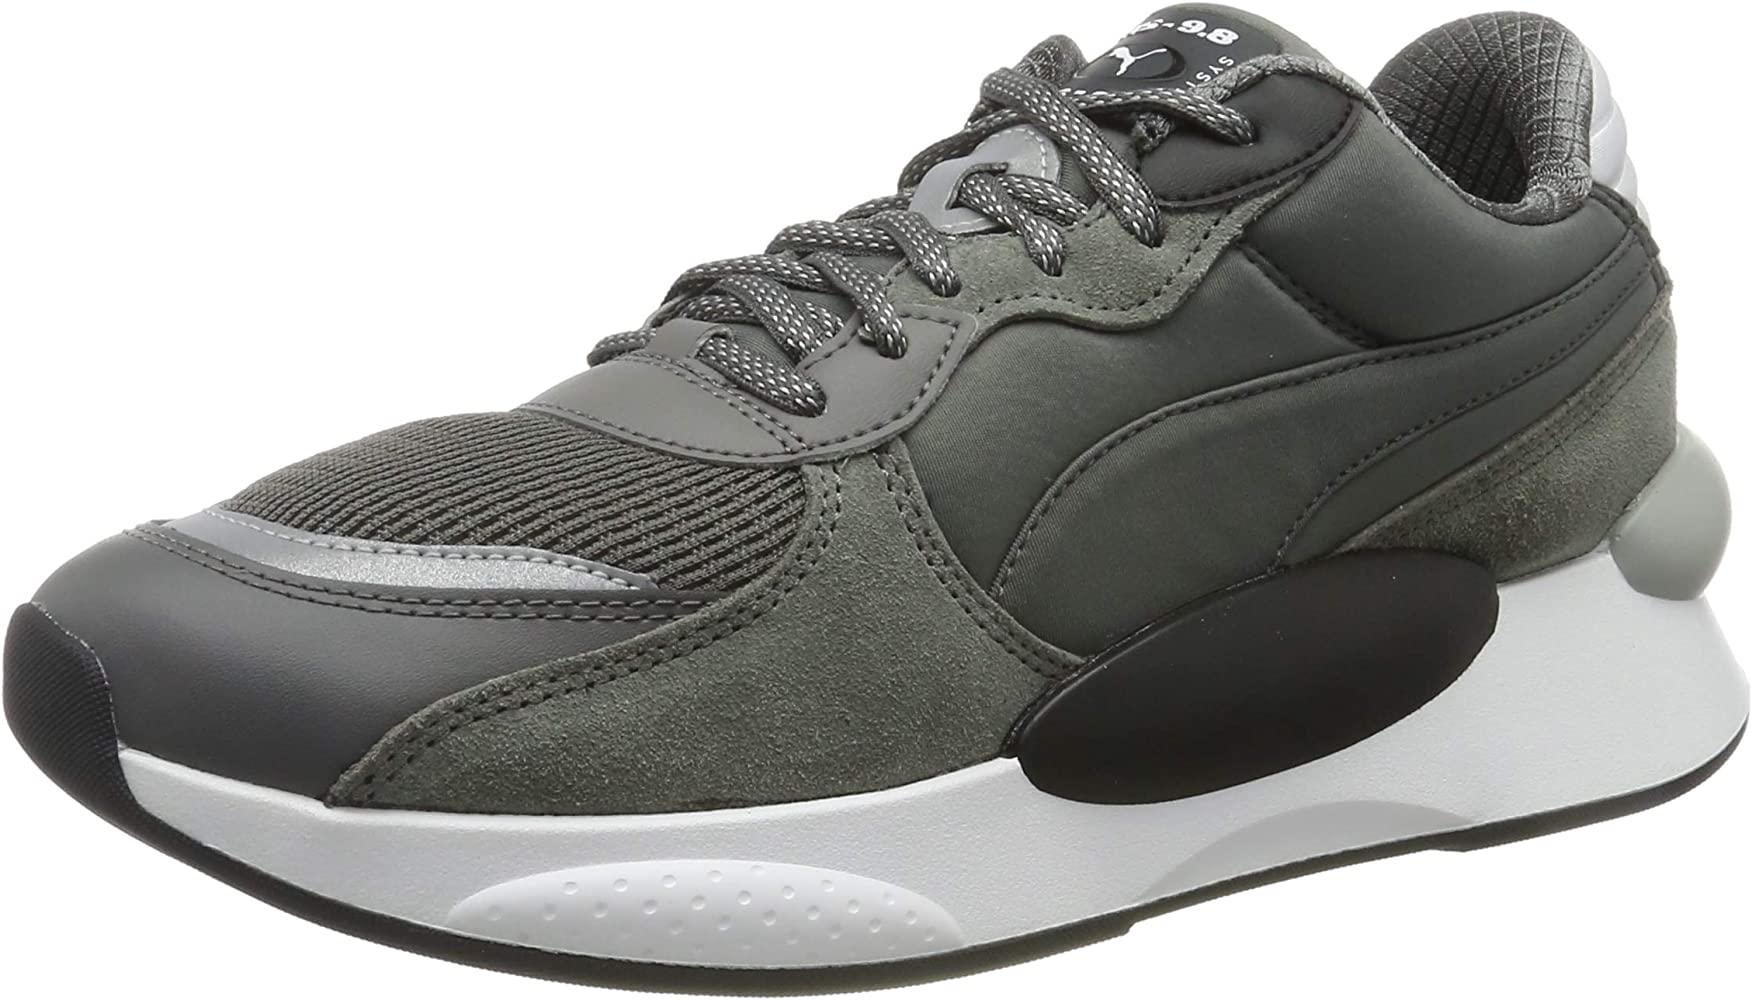 Unisex Adults' Rs 9.8 Gravity Trainers